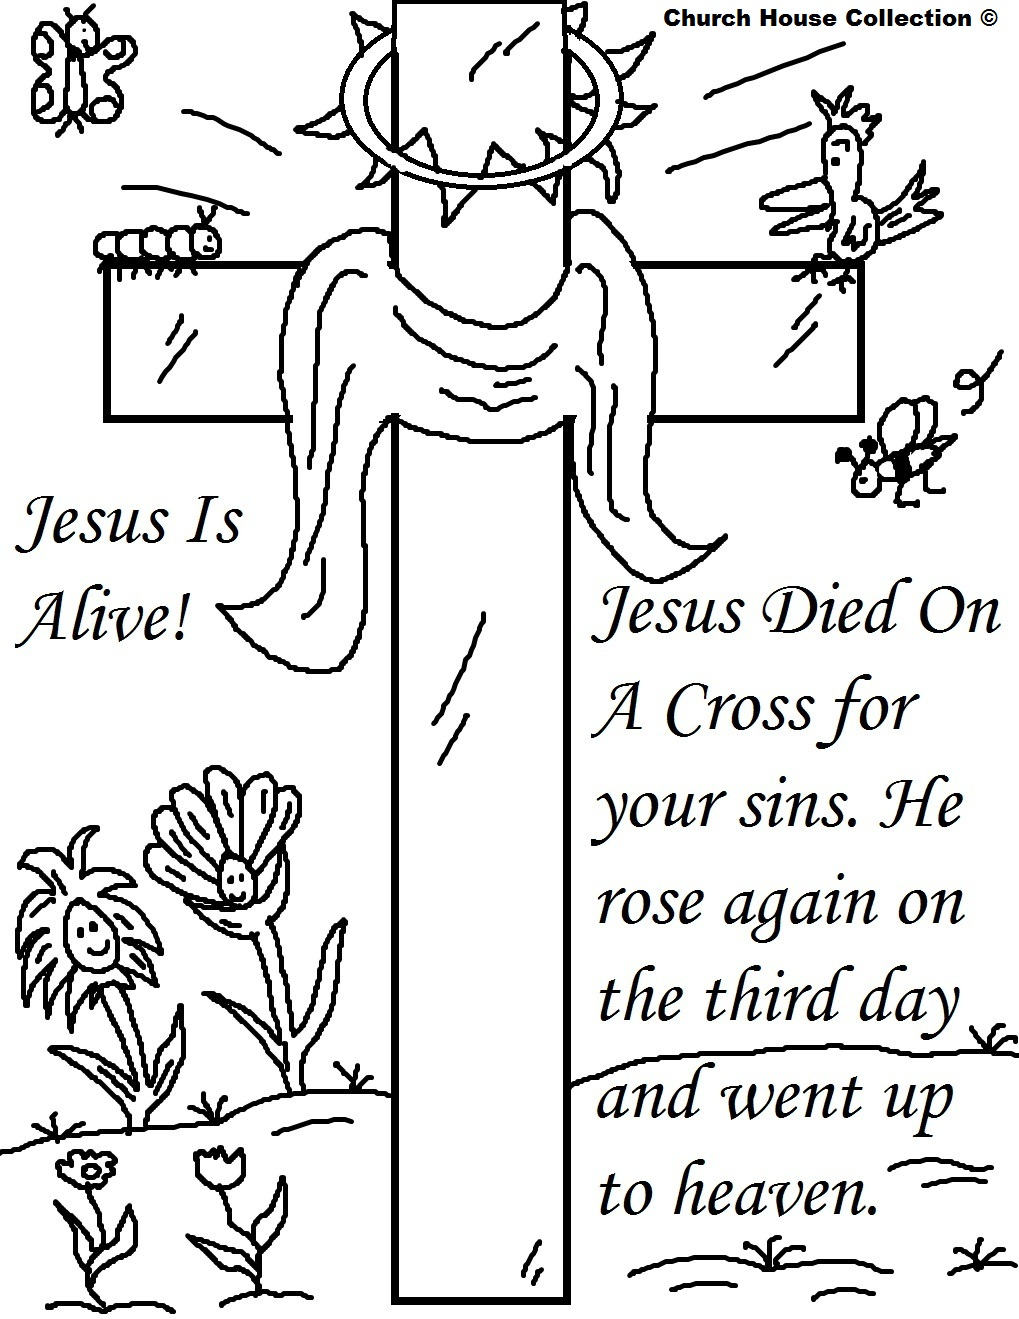 25 Religious Easter Coloring Pages | Free Easter Activity ... | free printable religious coloring pages for easter